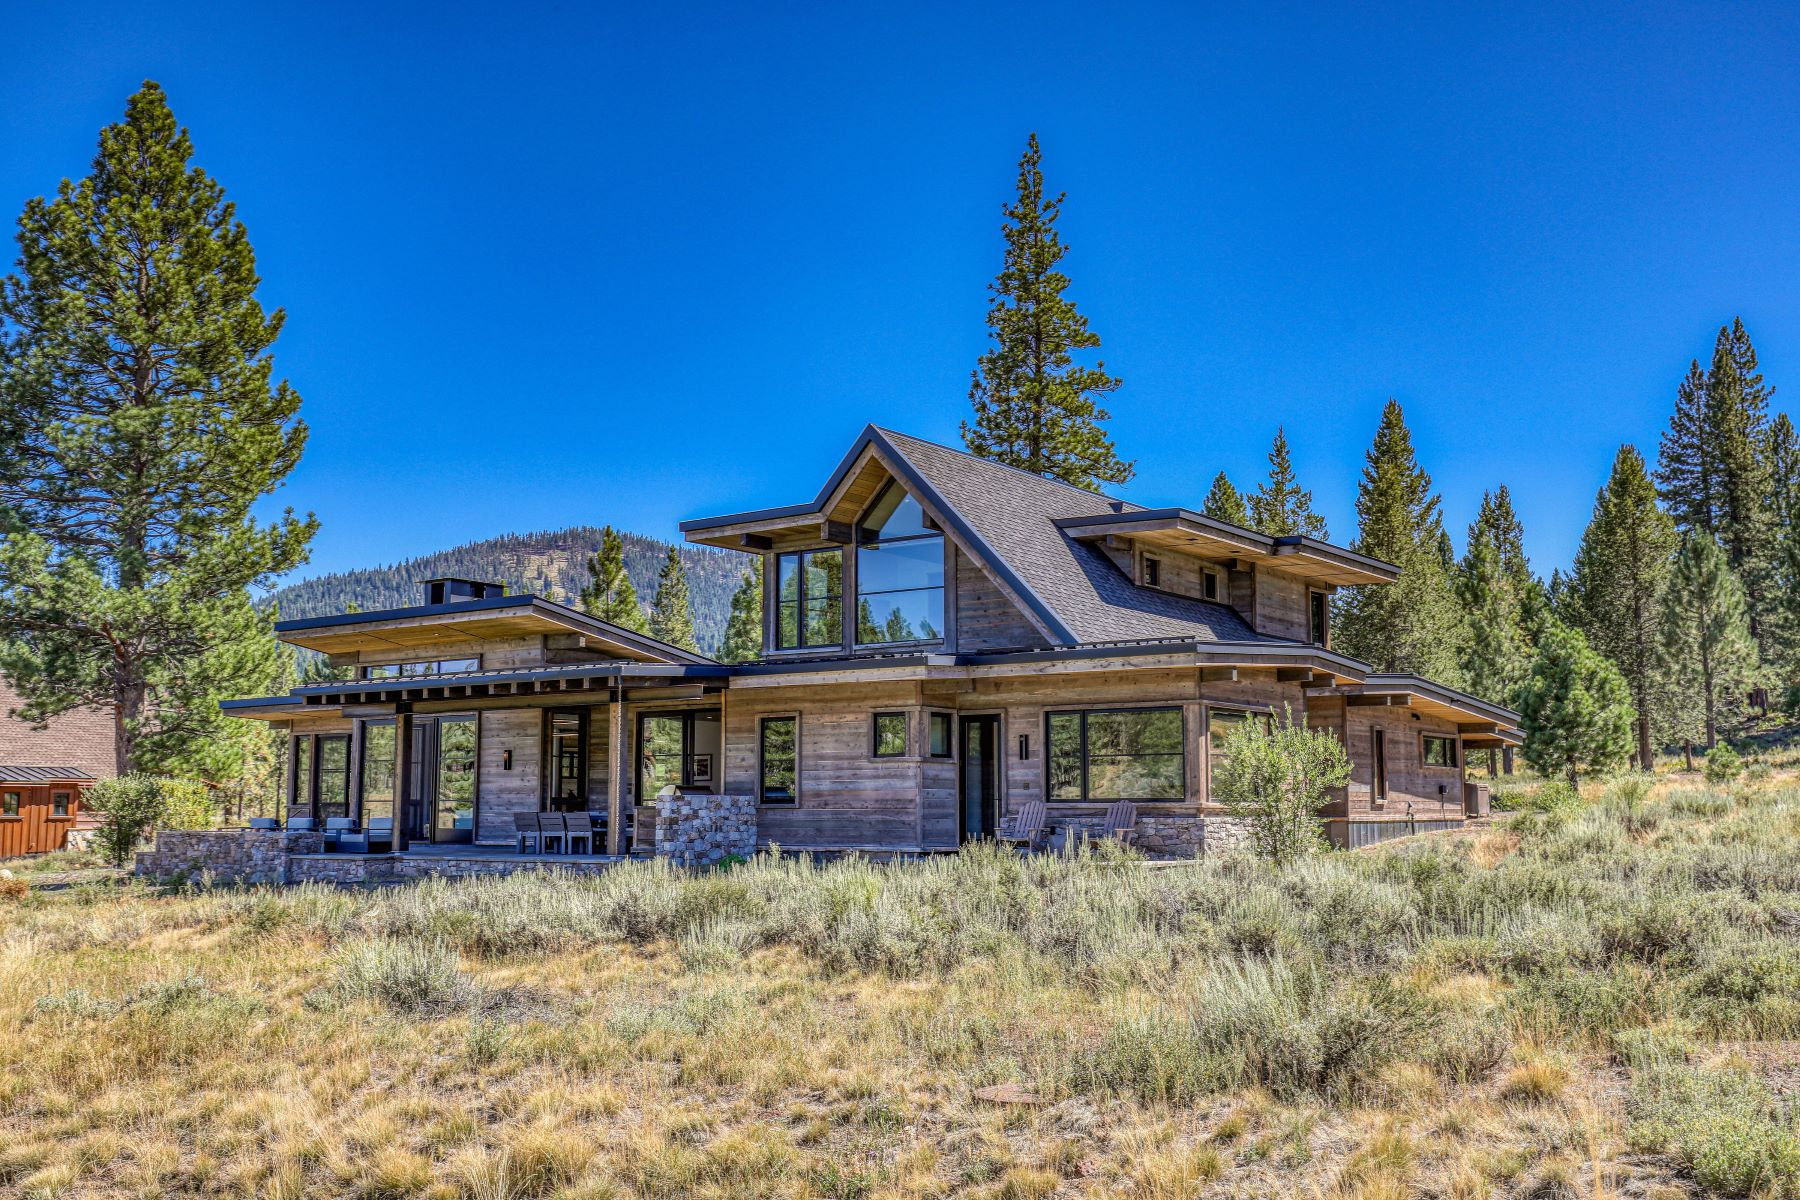 Property for Active at 10320 Dick Barter, Truckee, CA 96161 10320 Dick Barter Truckee, California 96161 United States